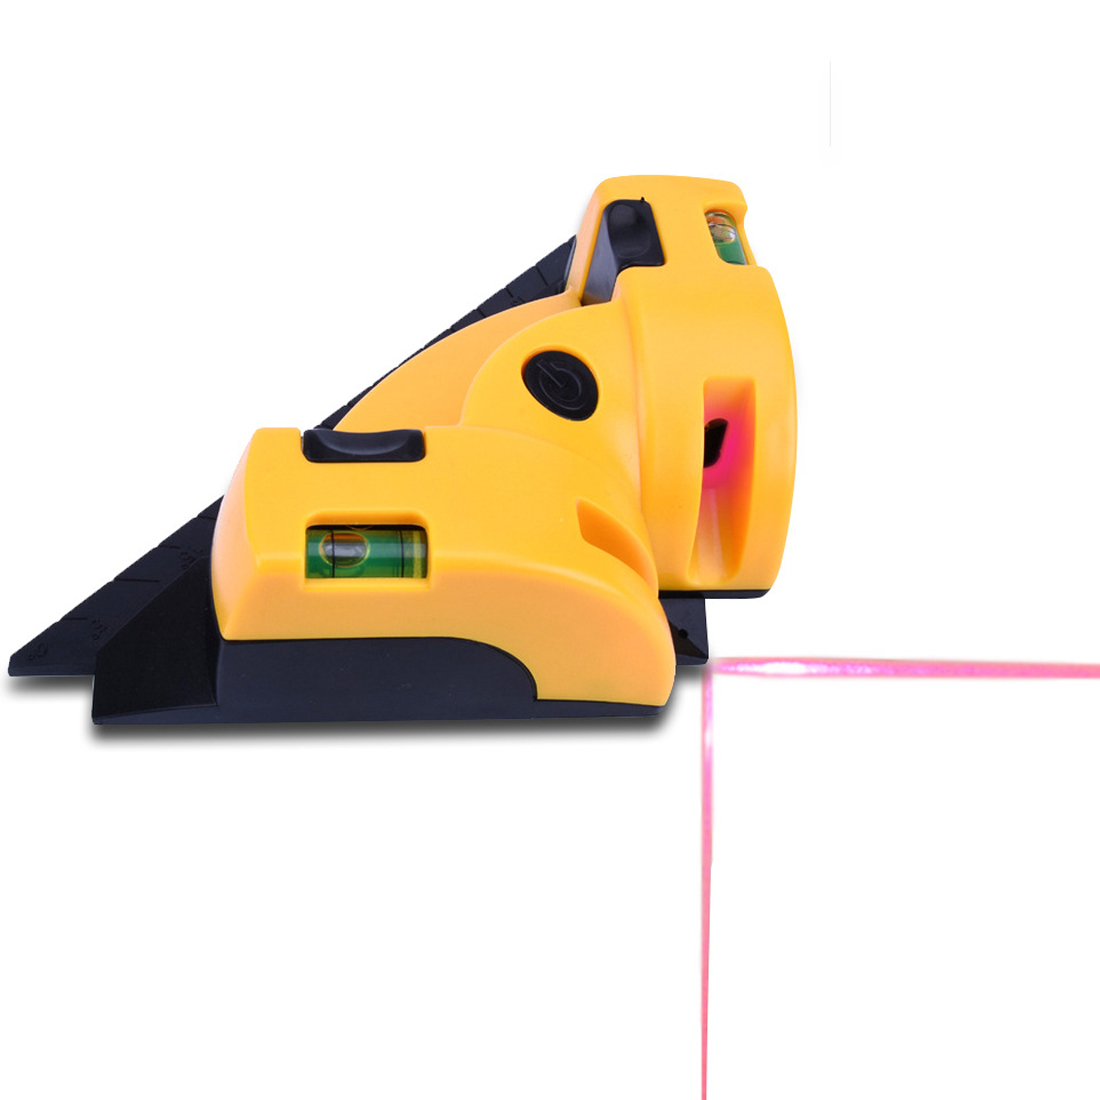 Right Angle 90 Degree Vertical Horizontal Laser Line Projection Square LevelRight Angle 90 Degree Vertical Horizontal Laser Line Projection Square Level